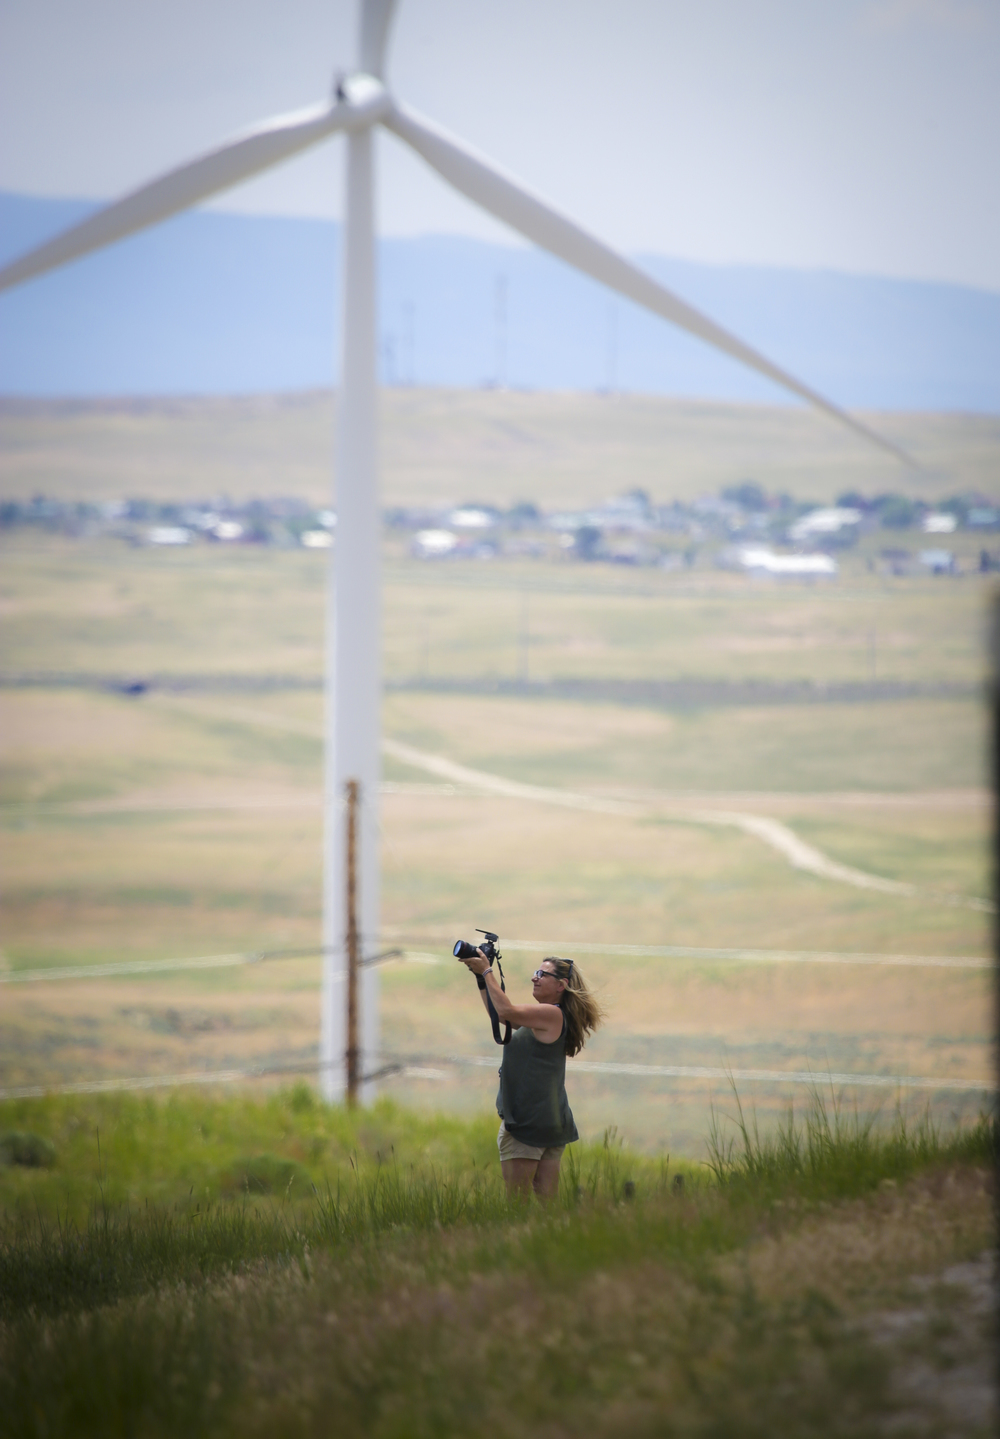 Melody Gilbert getting some footage of the wind turbines near Rolling Hills Wyoming.